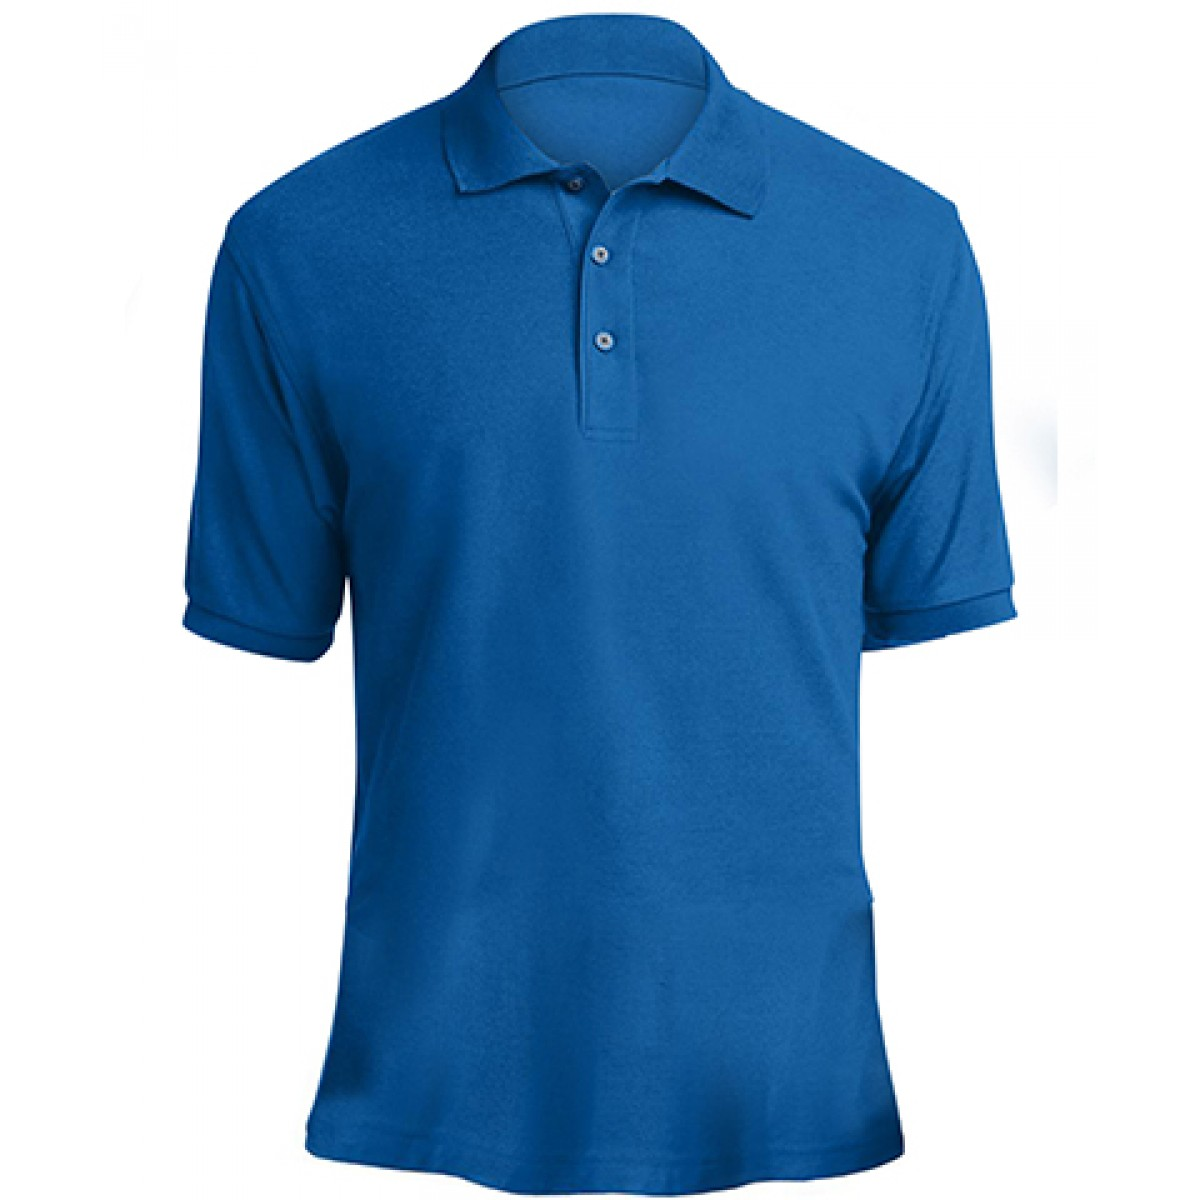 Womens Classic Polo -Royal Blue-YL